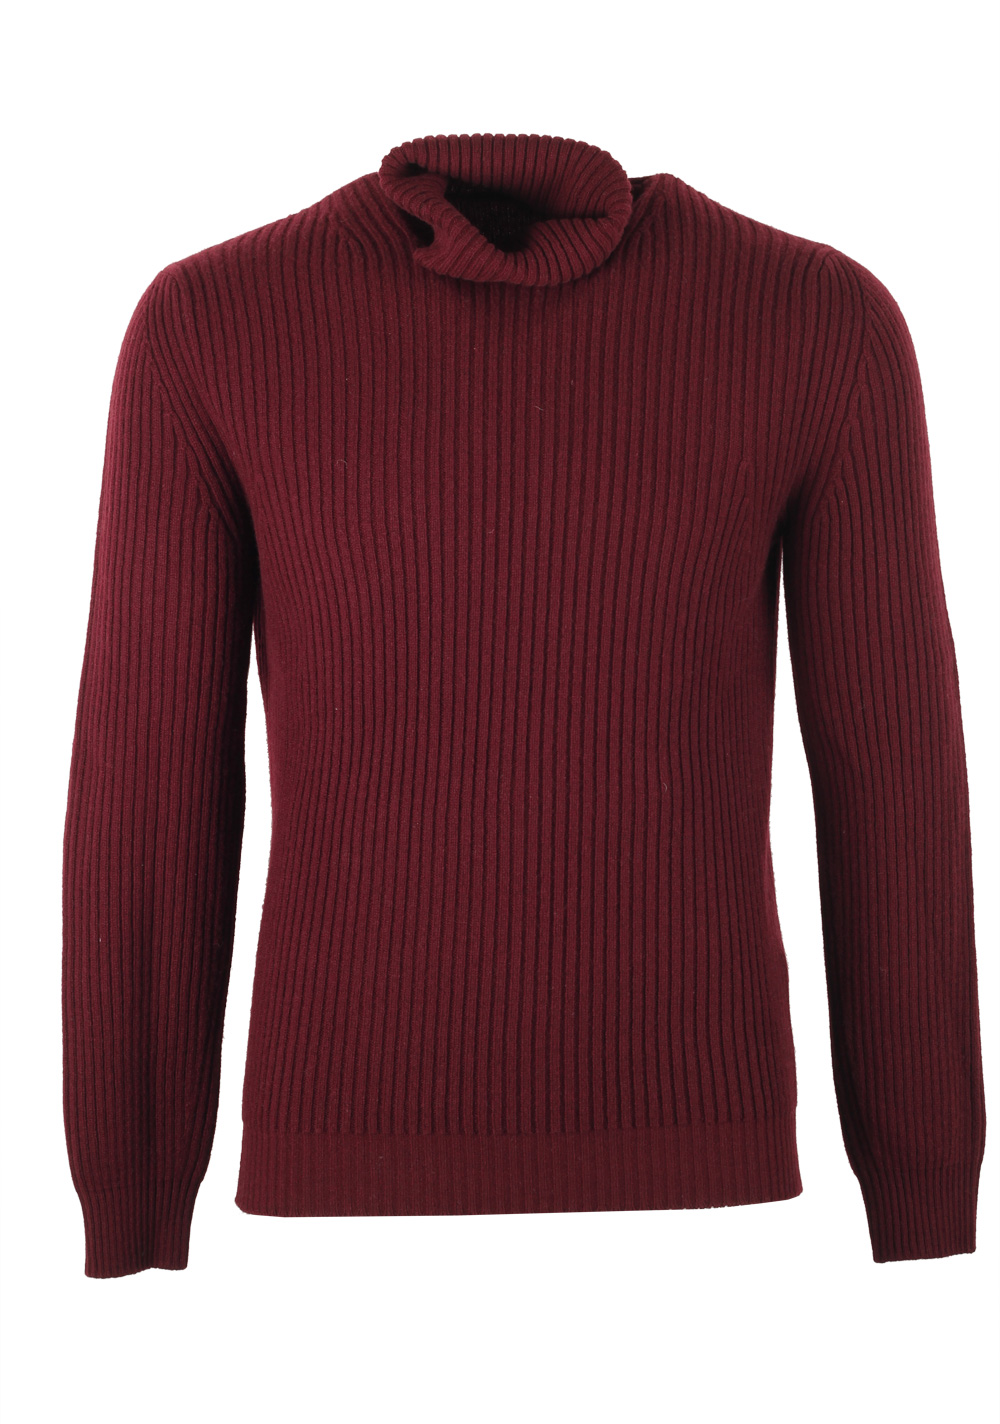 TOM FORD Red Turtleneck Sweater Size 48 / 38R U.S. In Wool Cashmere | Costume Limité